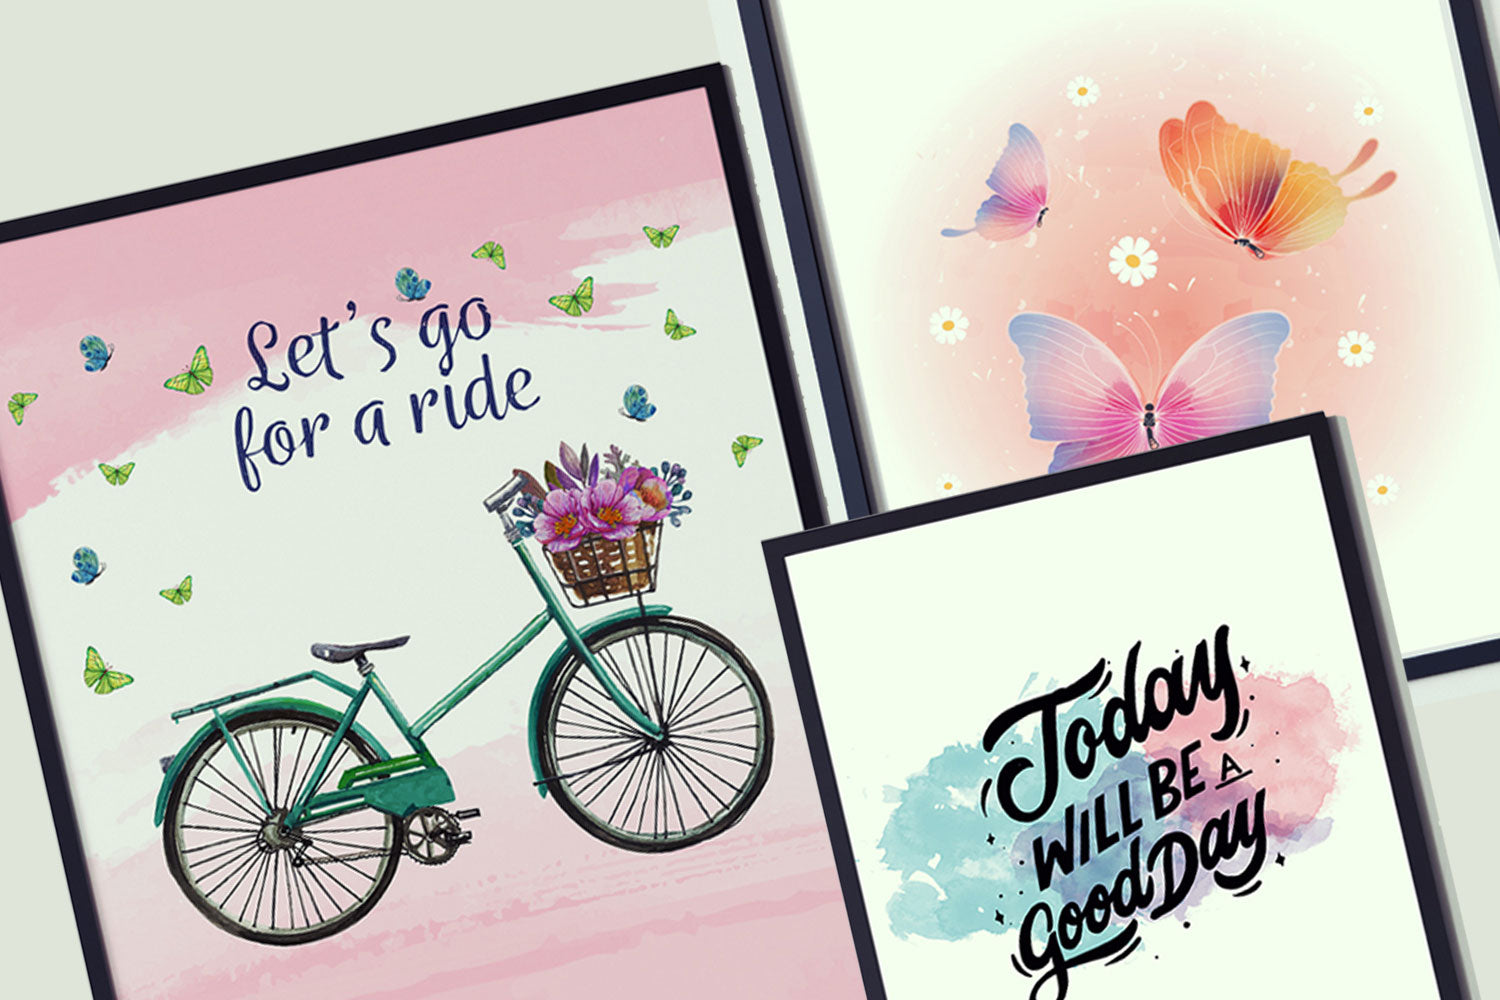 Good Day Canvas Pictues, Let Go For A Ride, Painting Canvas Designs, Art Design,  Printable Arts